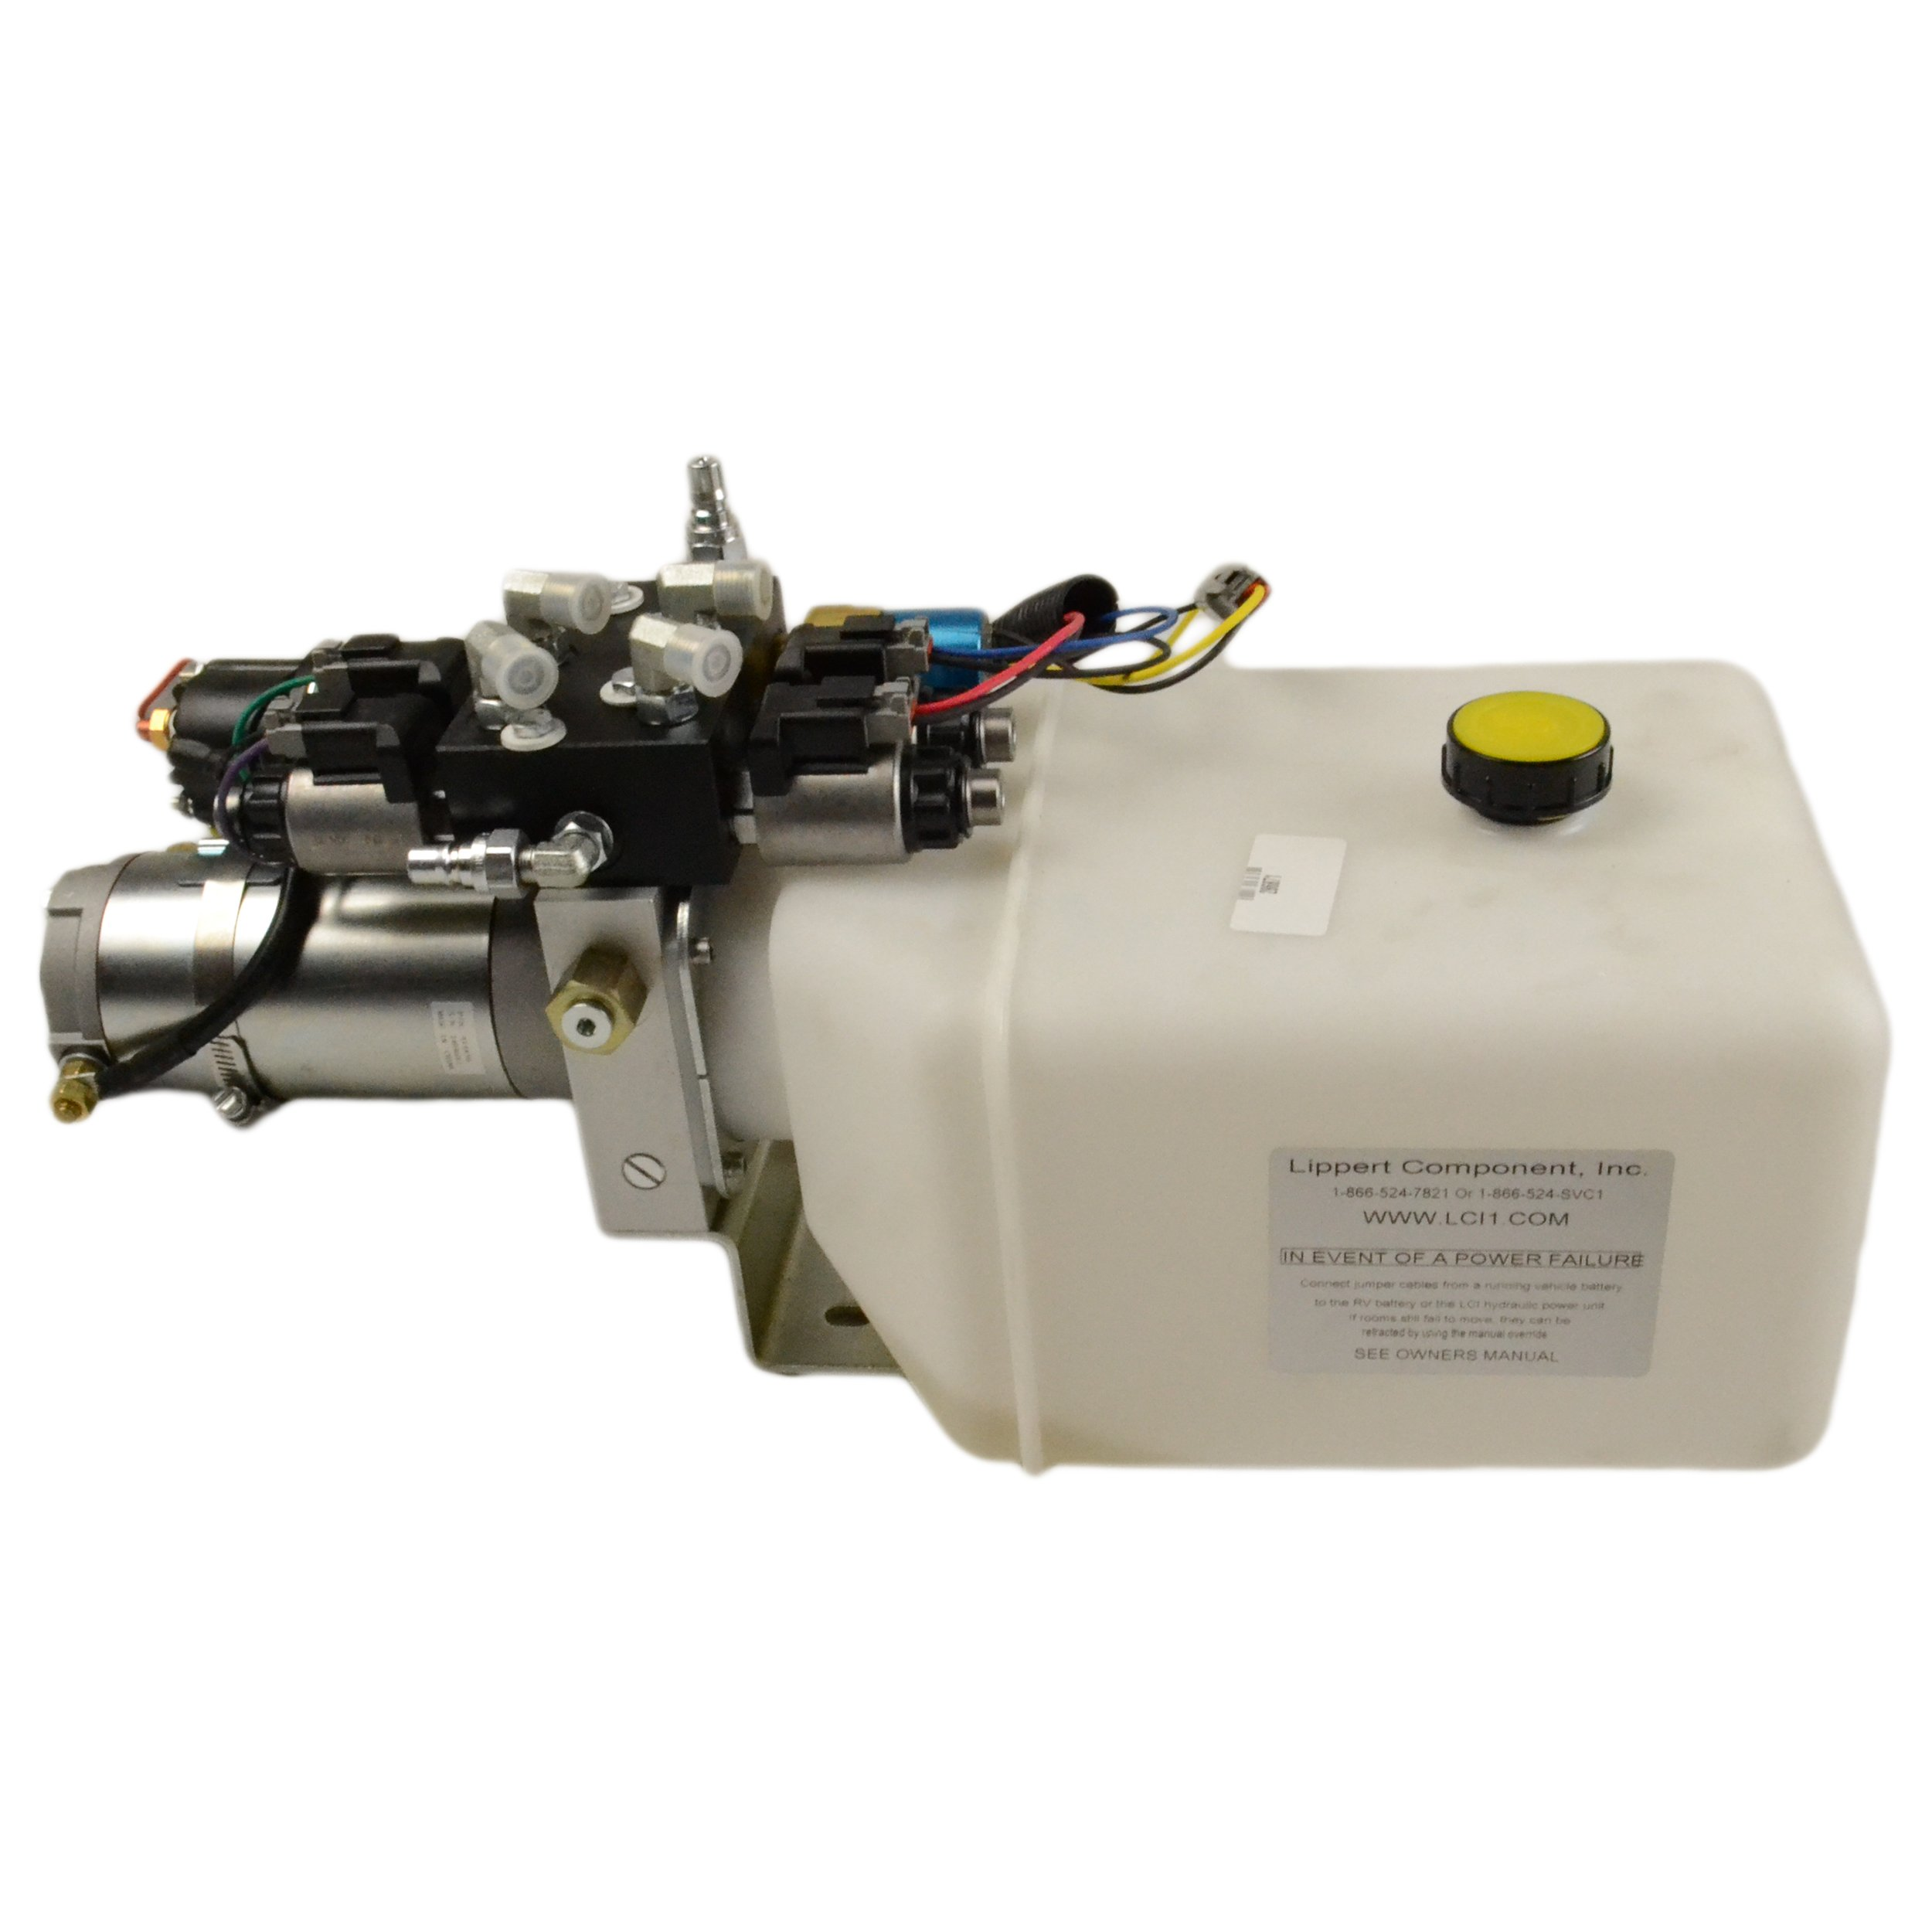 Lippert Components 286871 Leveling Pump and Power Unit by Lippert Components